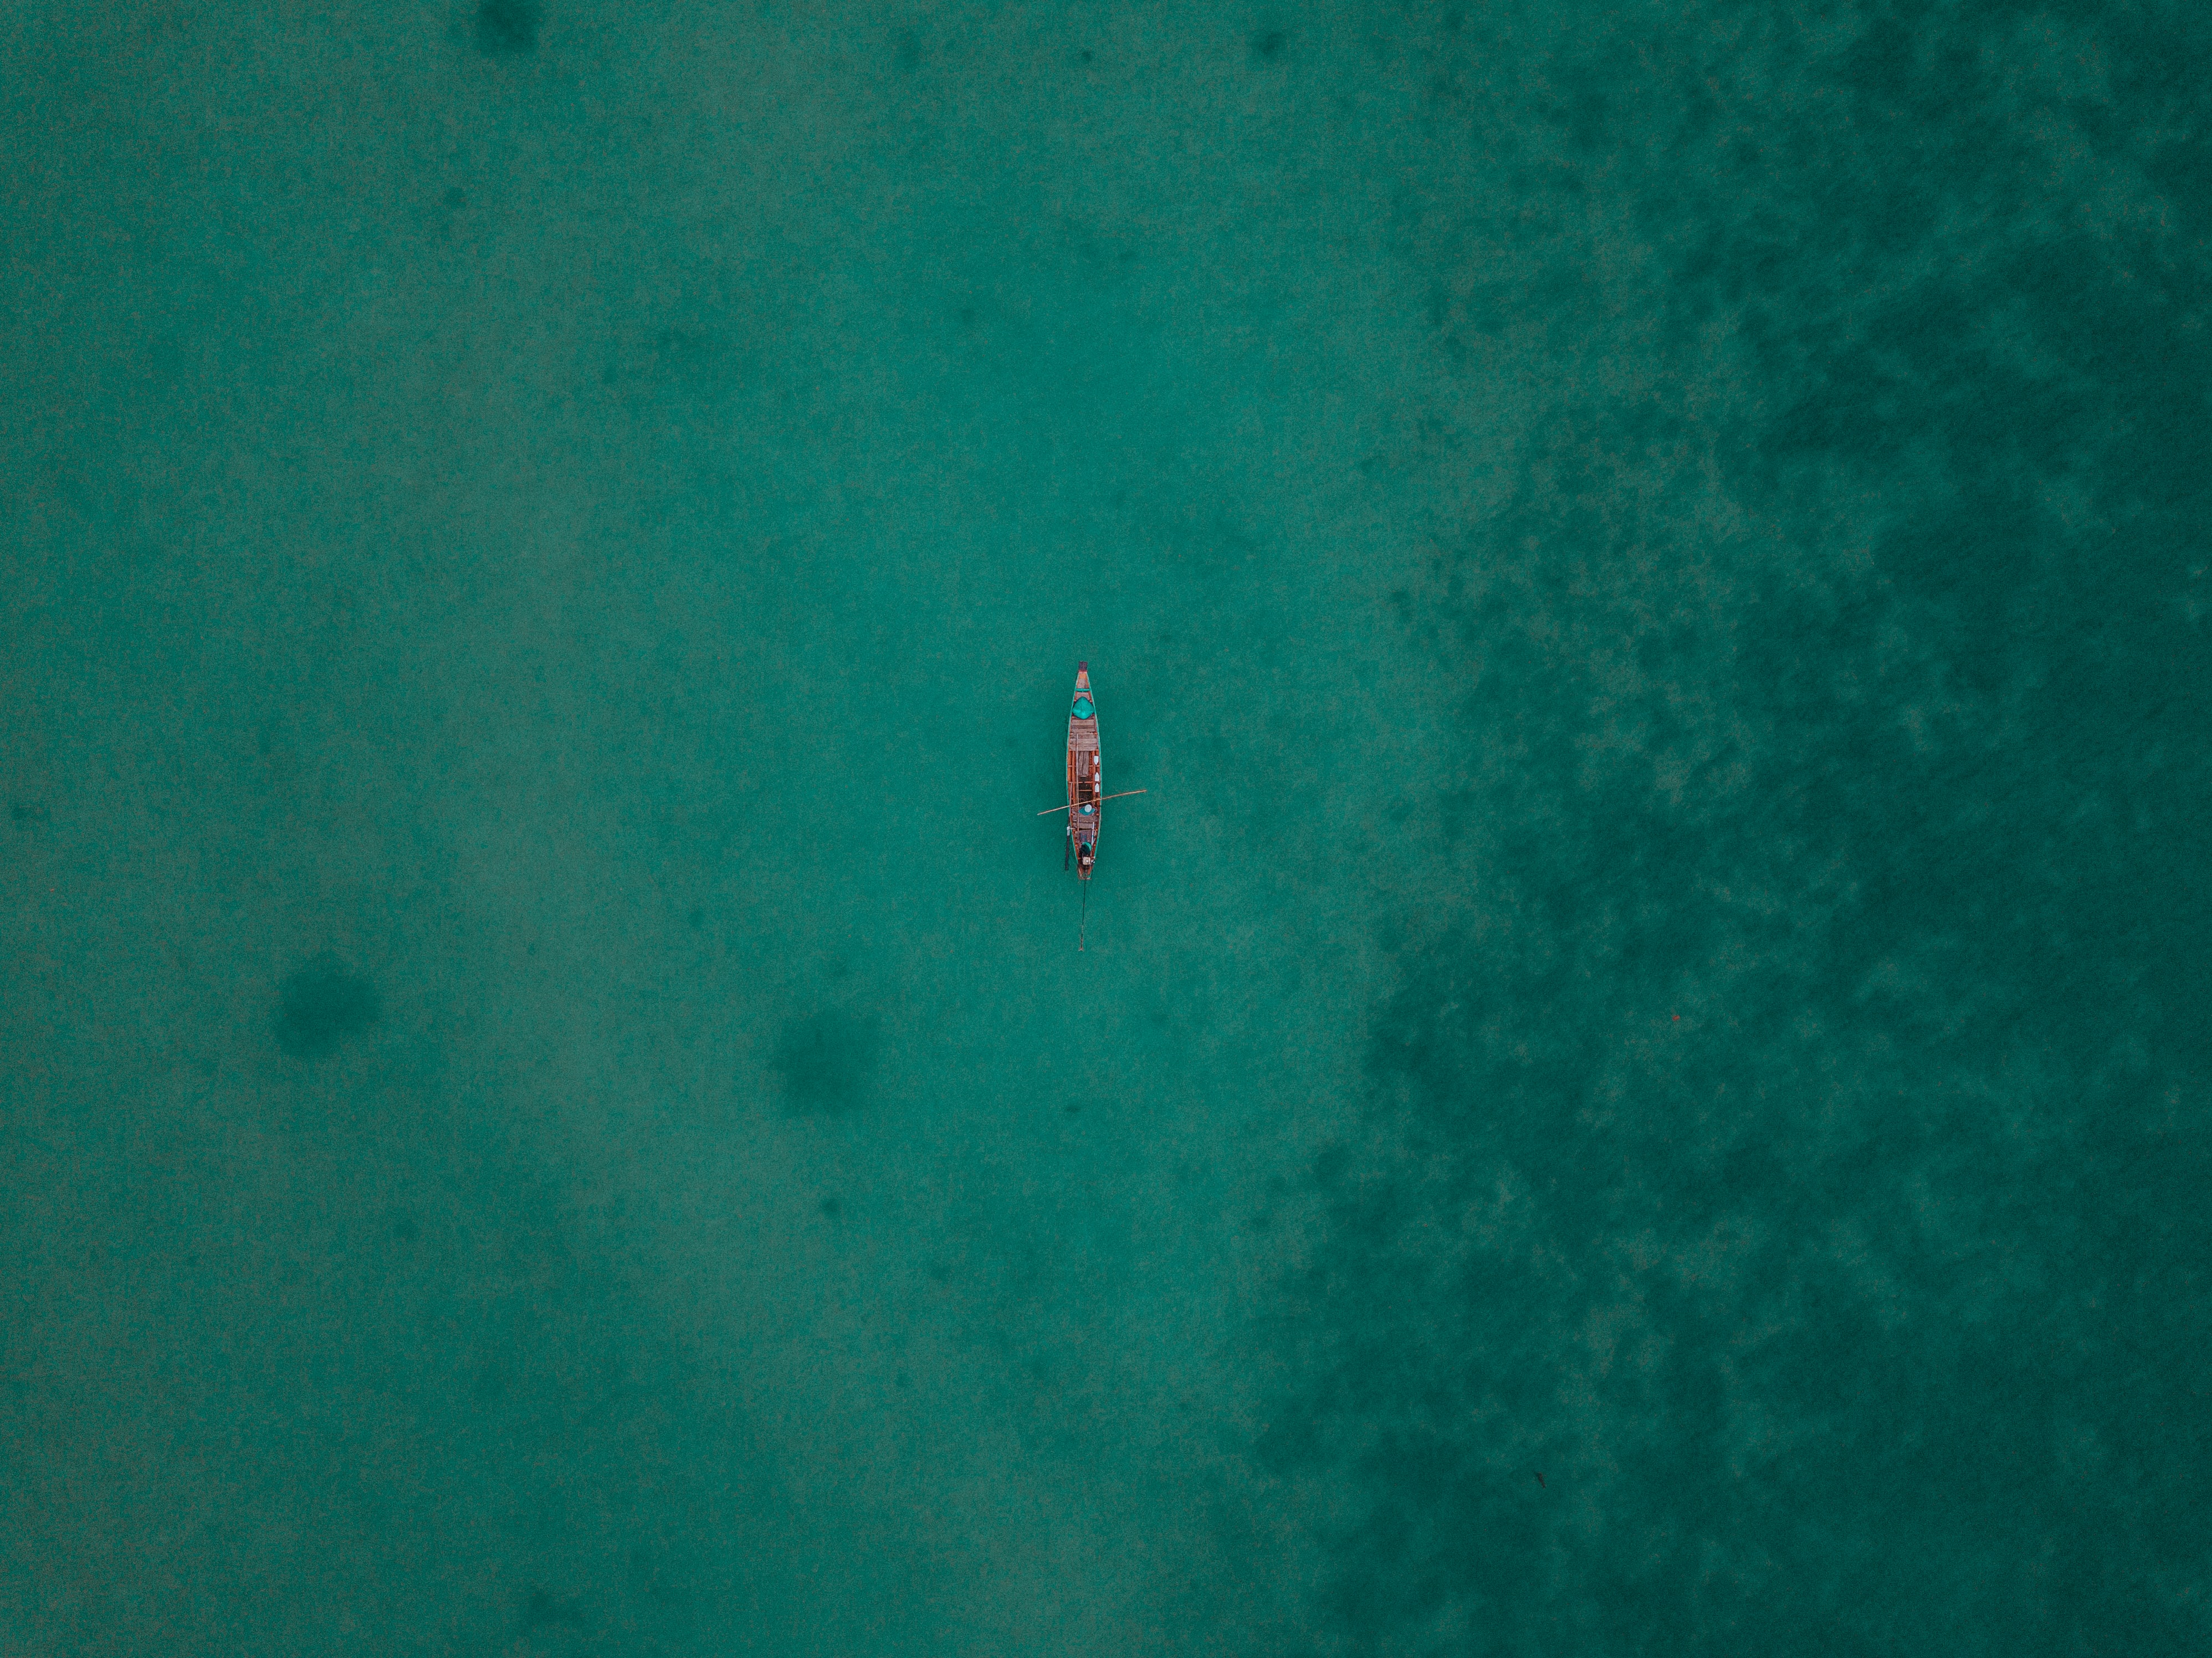 aerial photography of boat at sea